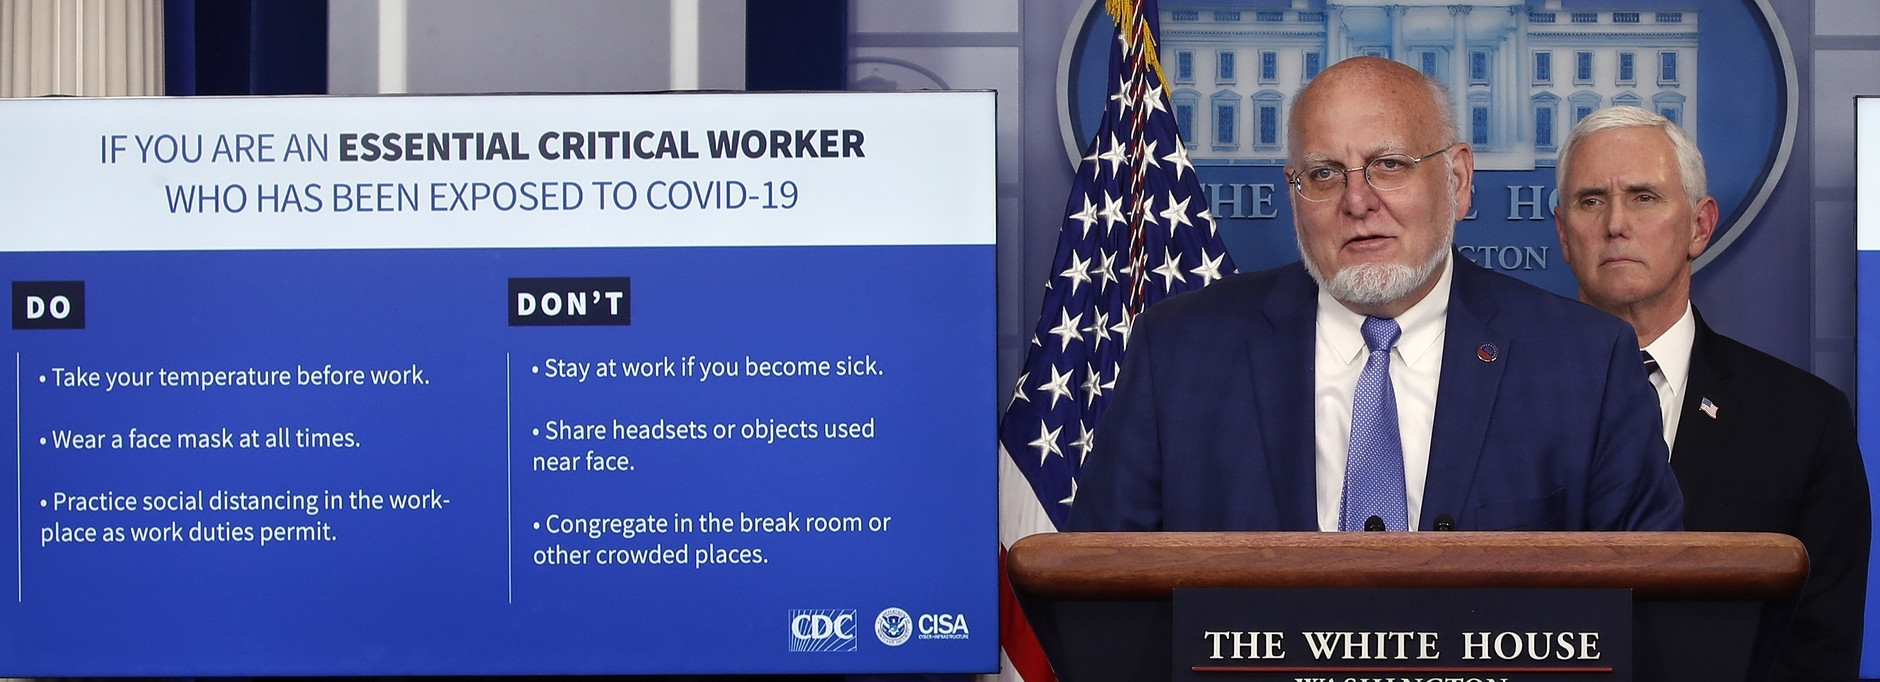 Cdc Eases Guidelines For Essential Workers Who'Ve Been